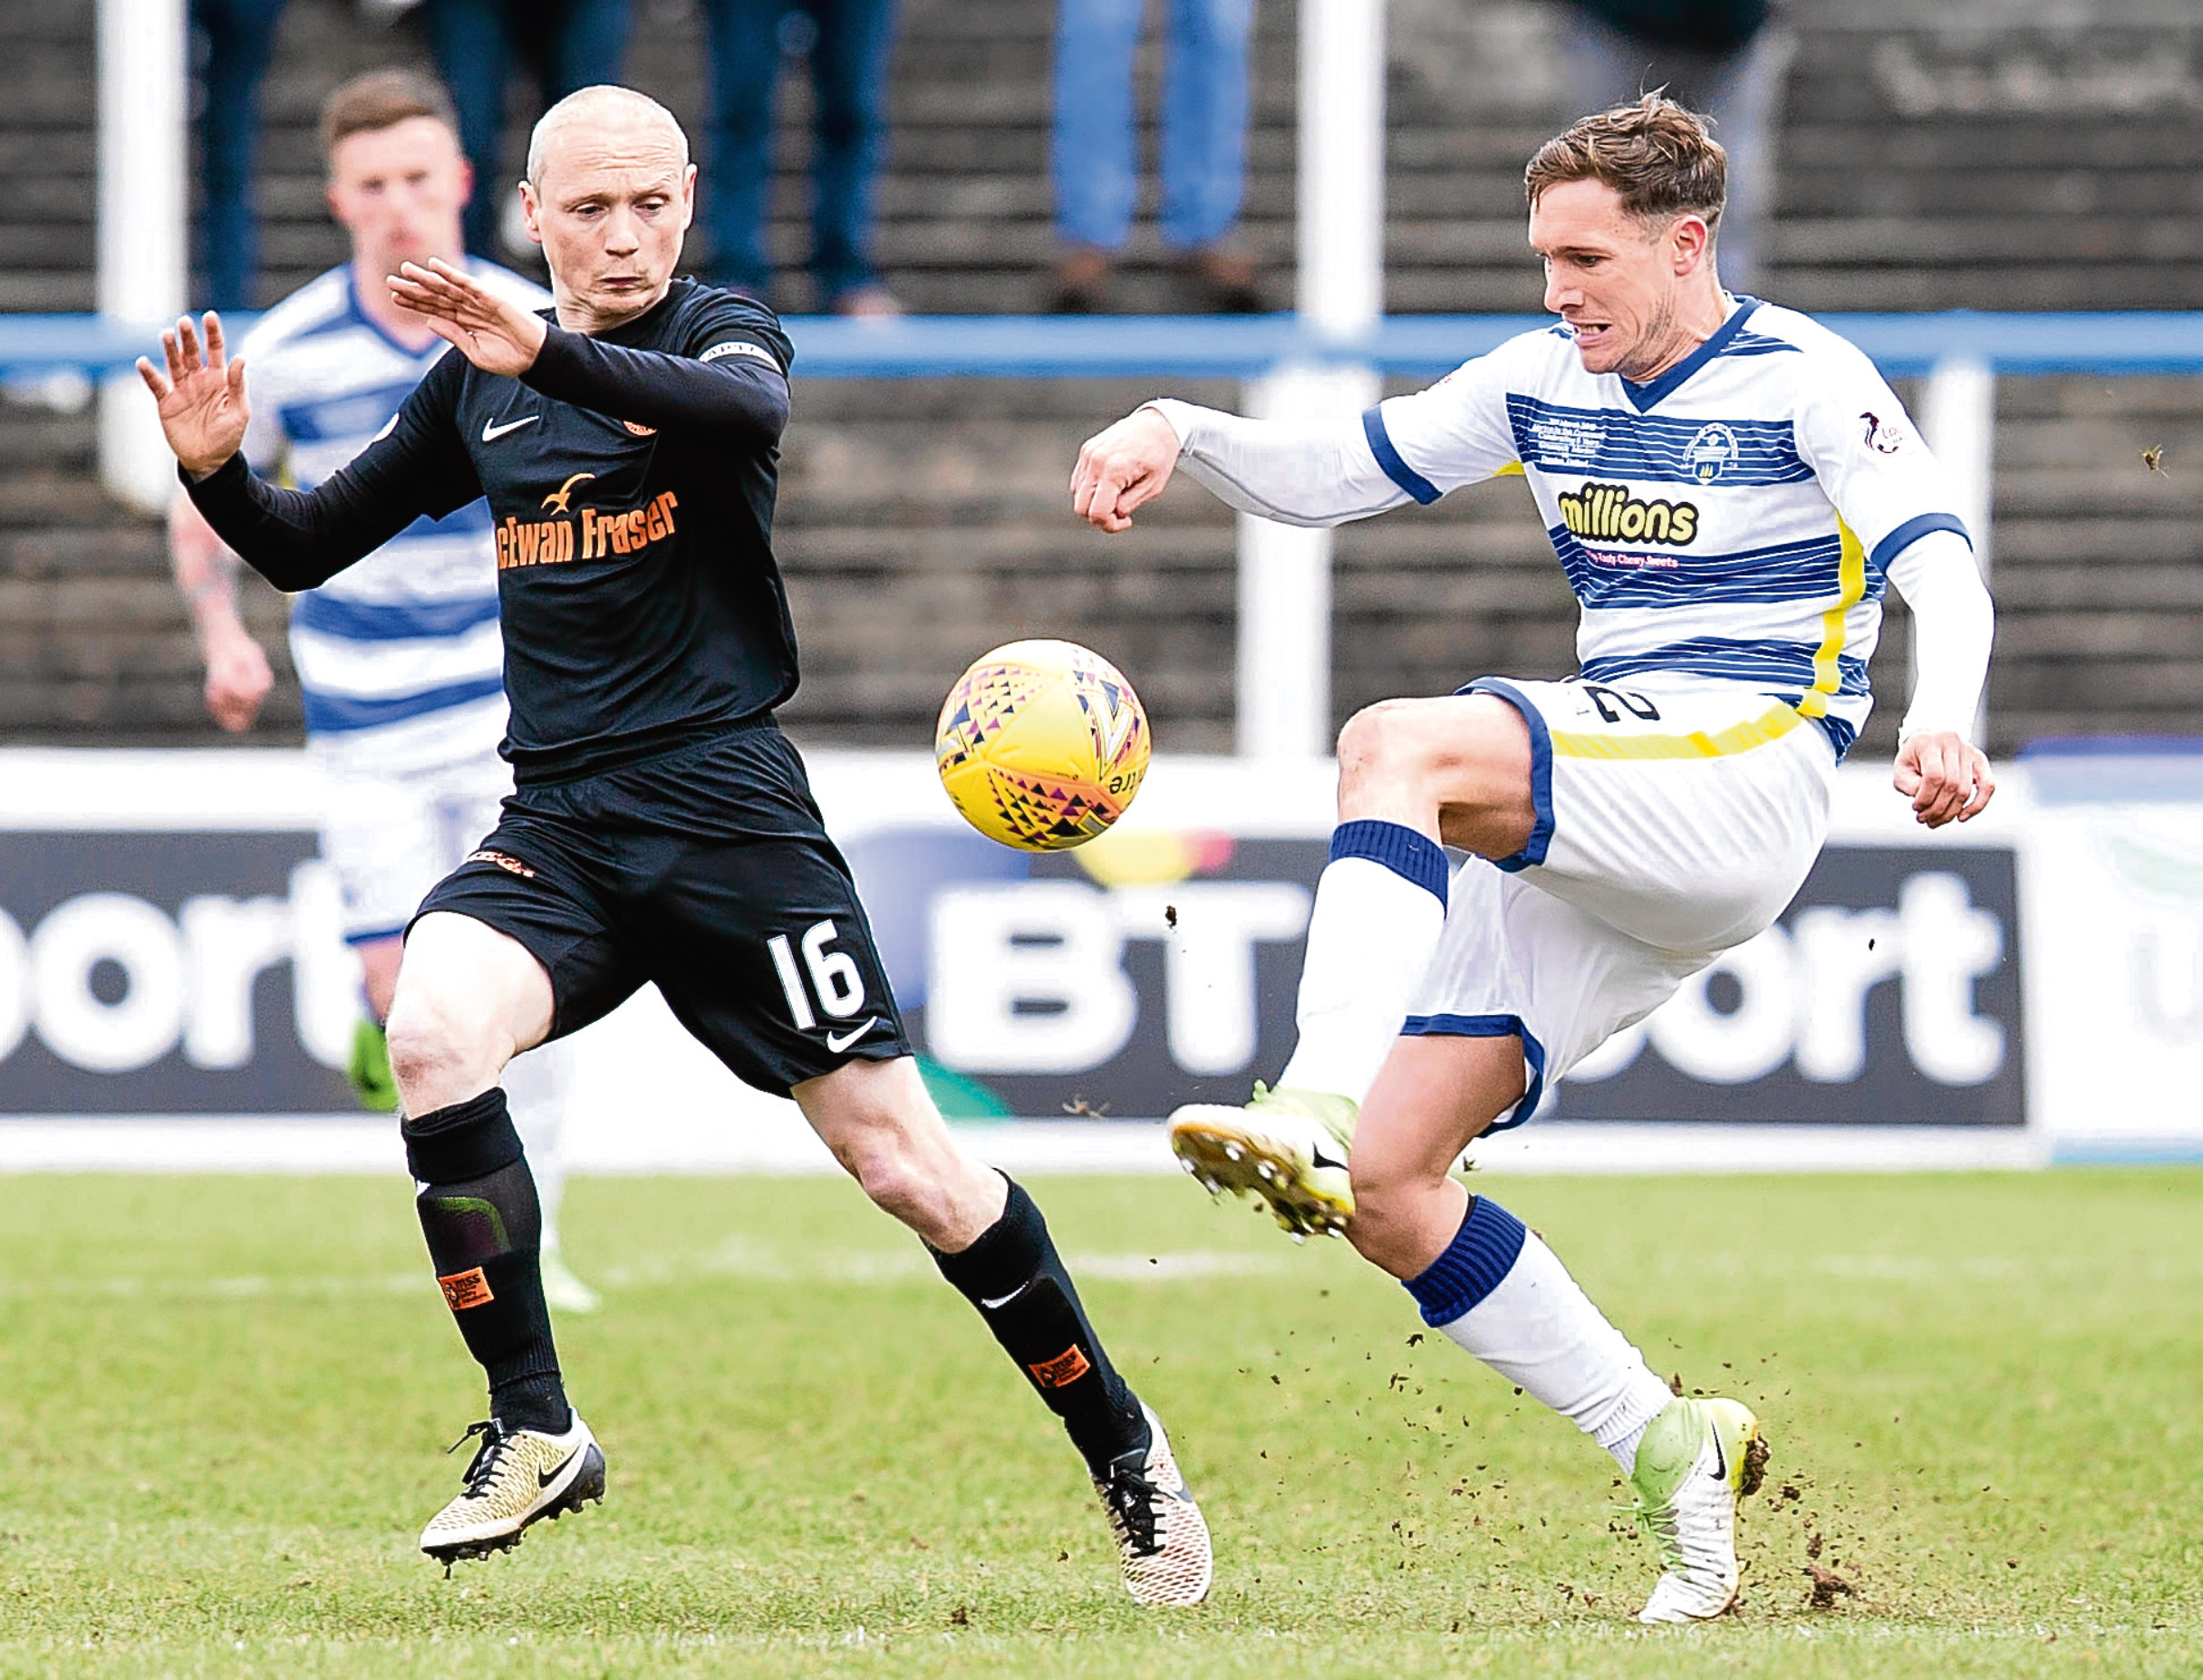 Dundee United captain Willo Flood thought they'd done enough to beat Morton at Cappielow last Saturday but was pleased with their response in victory over Dumbarton on Tuesday.